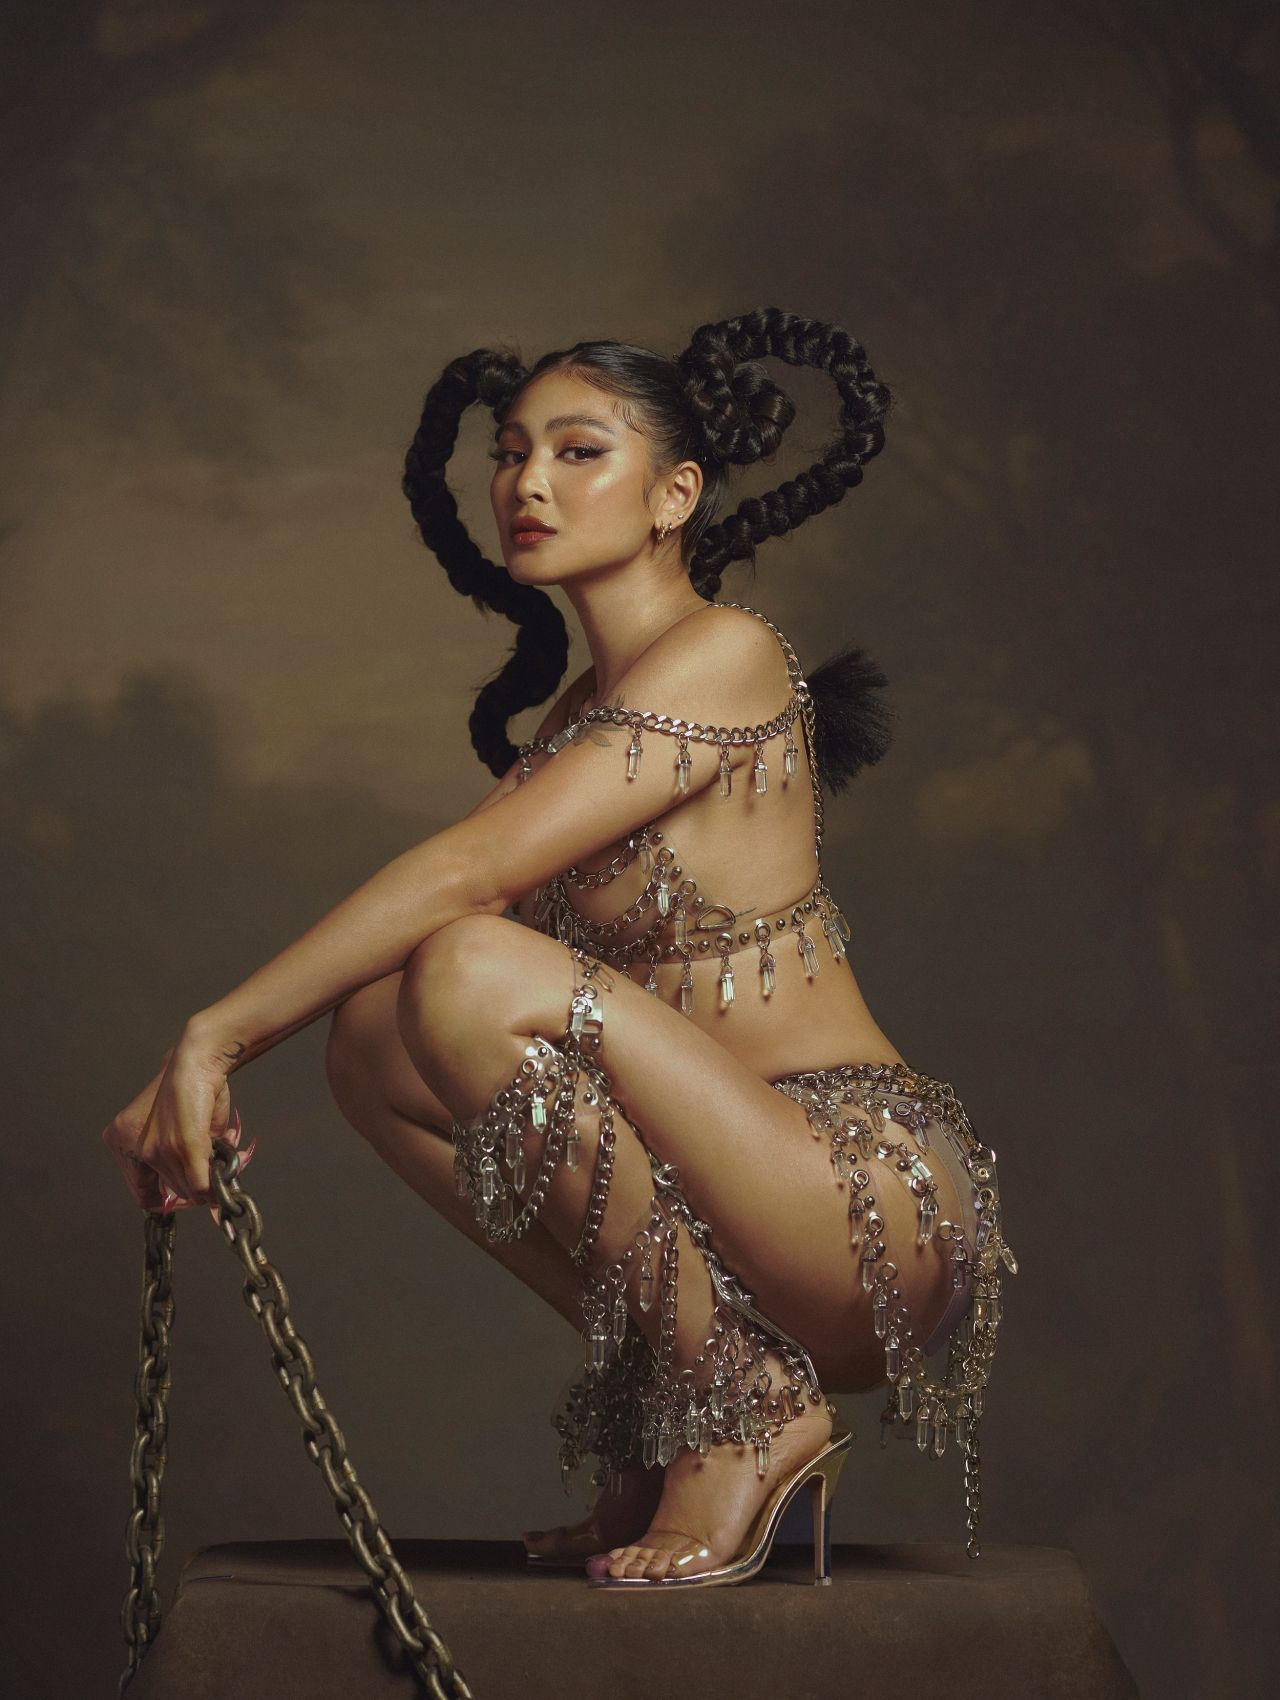 Scorpio Season from a series created to coincide with Halloween and Nadine Lustre's birthday and album release   Photo by BJ Pascual